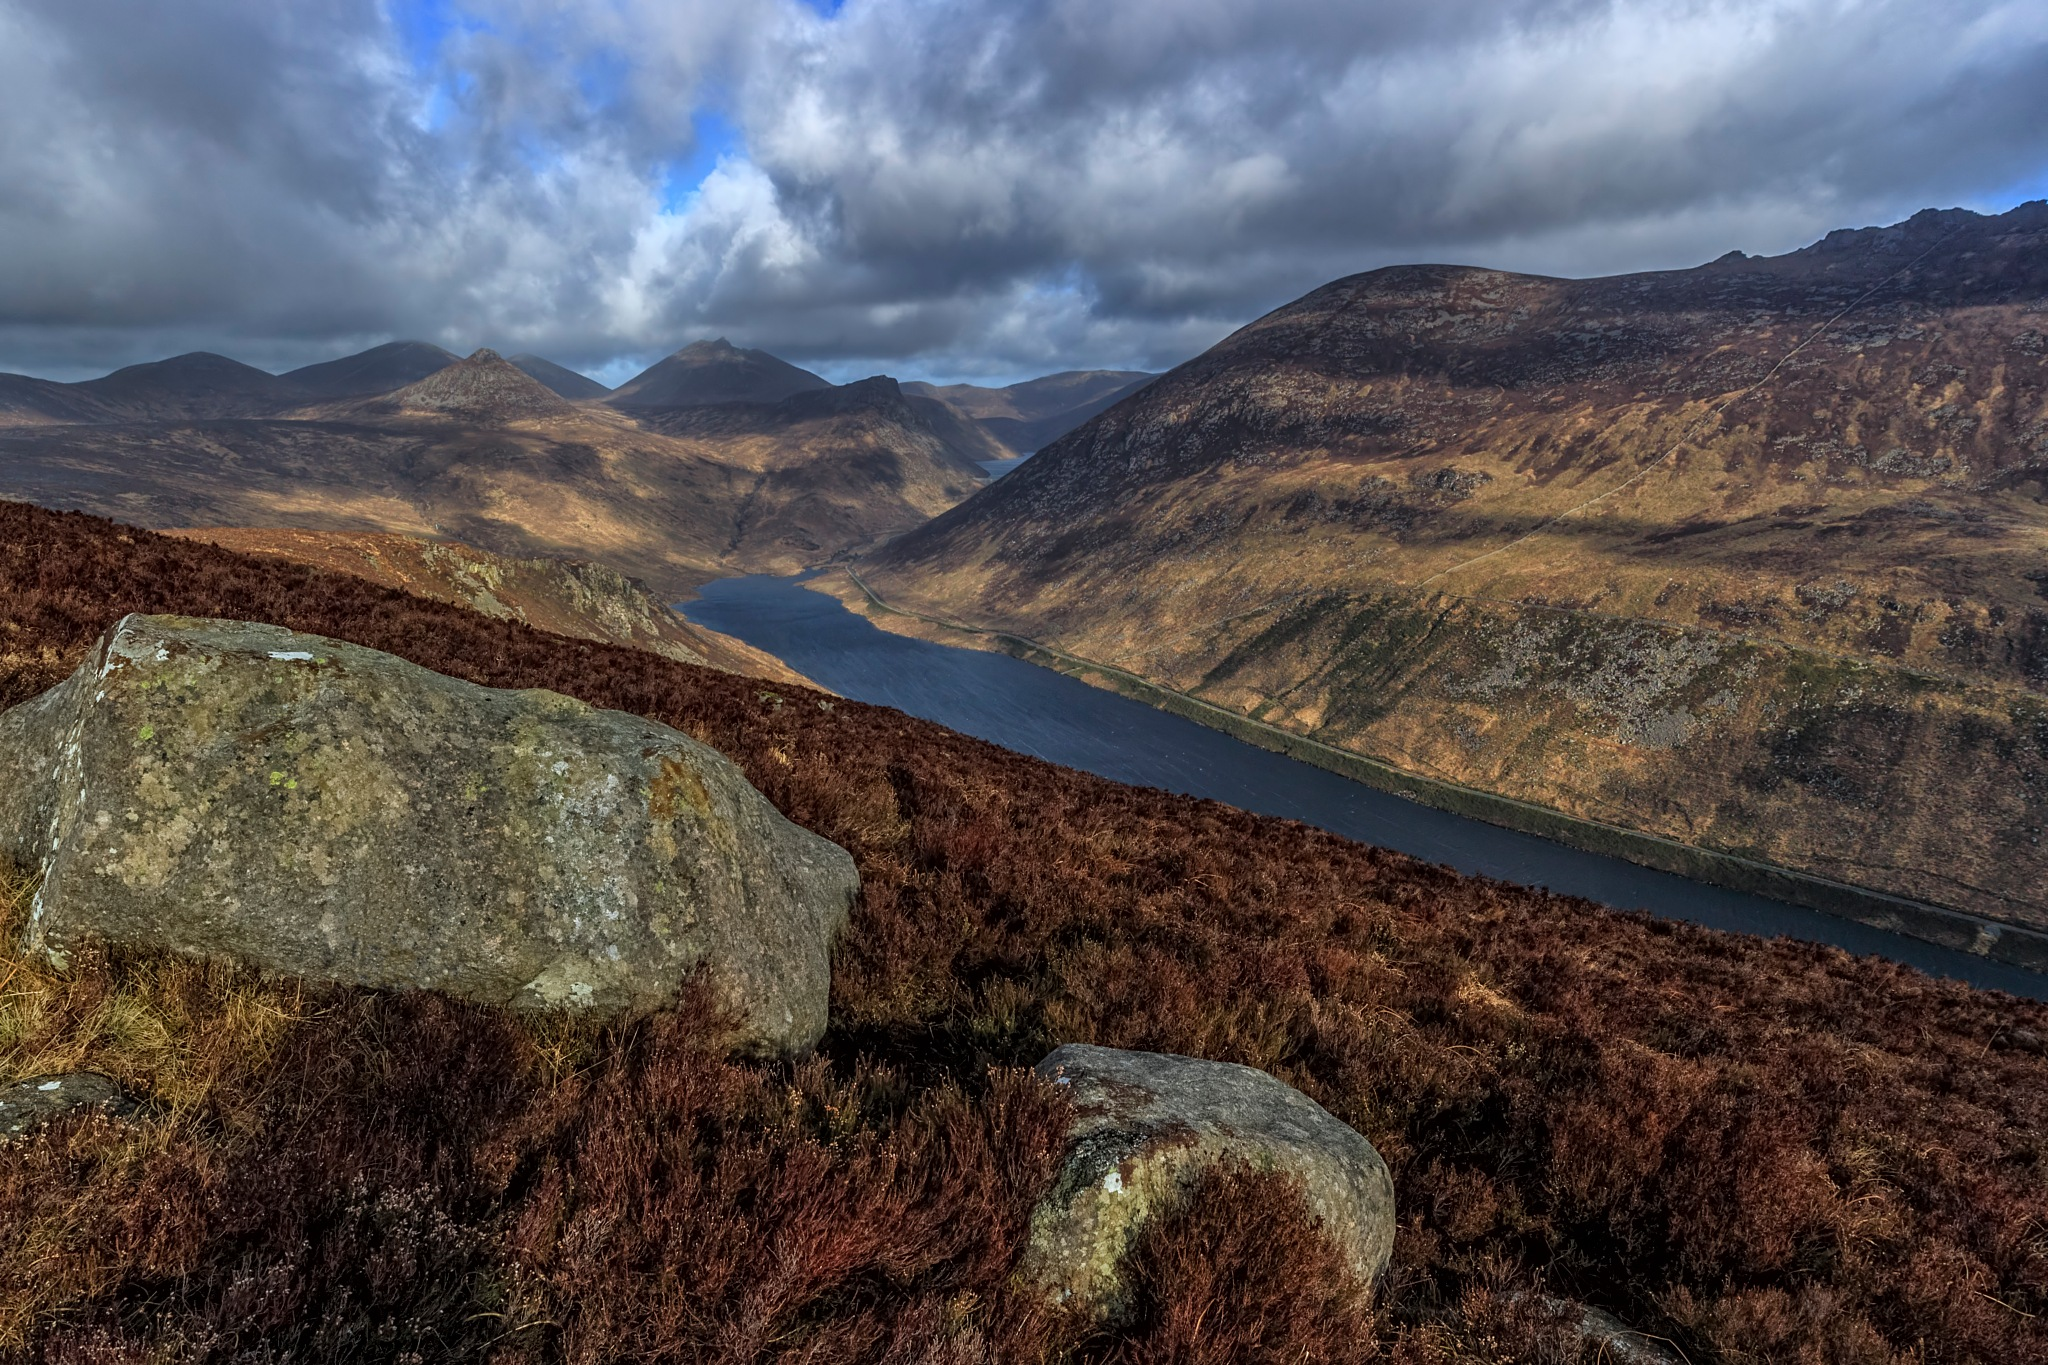 The Other Slievenaglogh by Barrie Lathwell